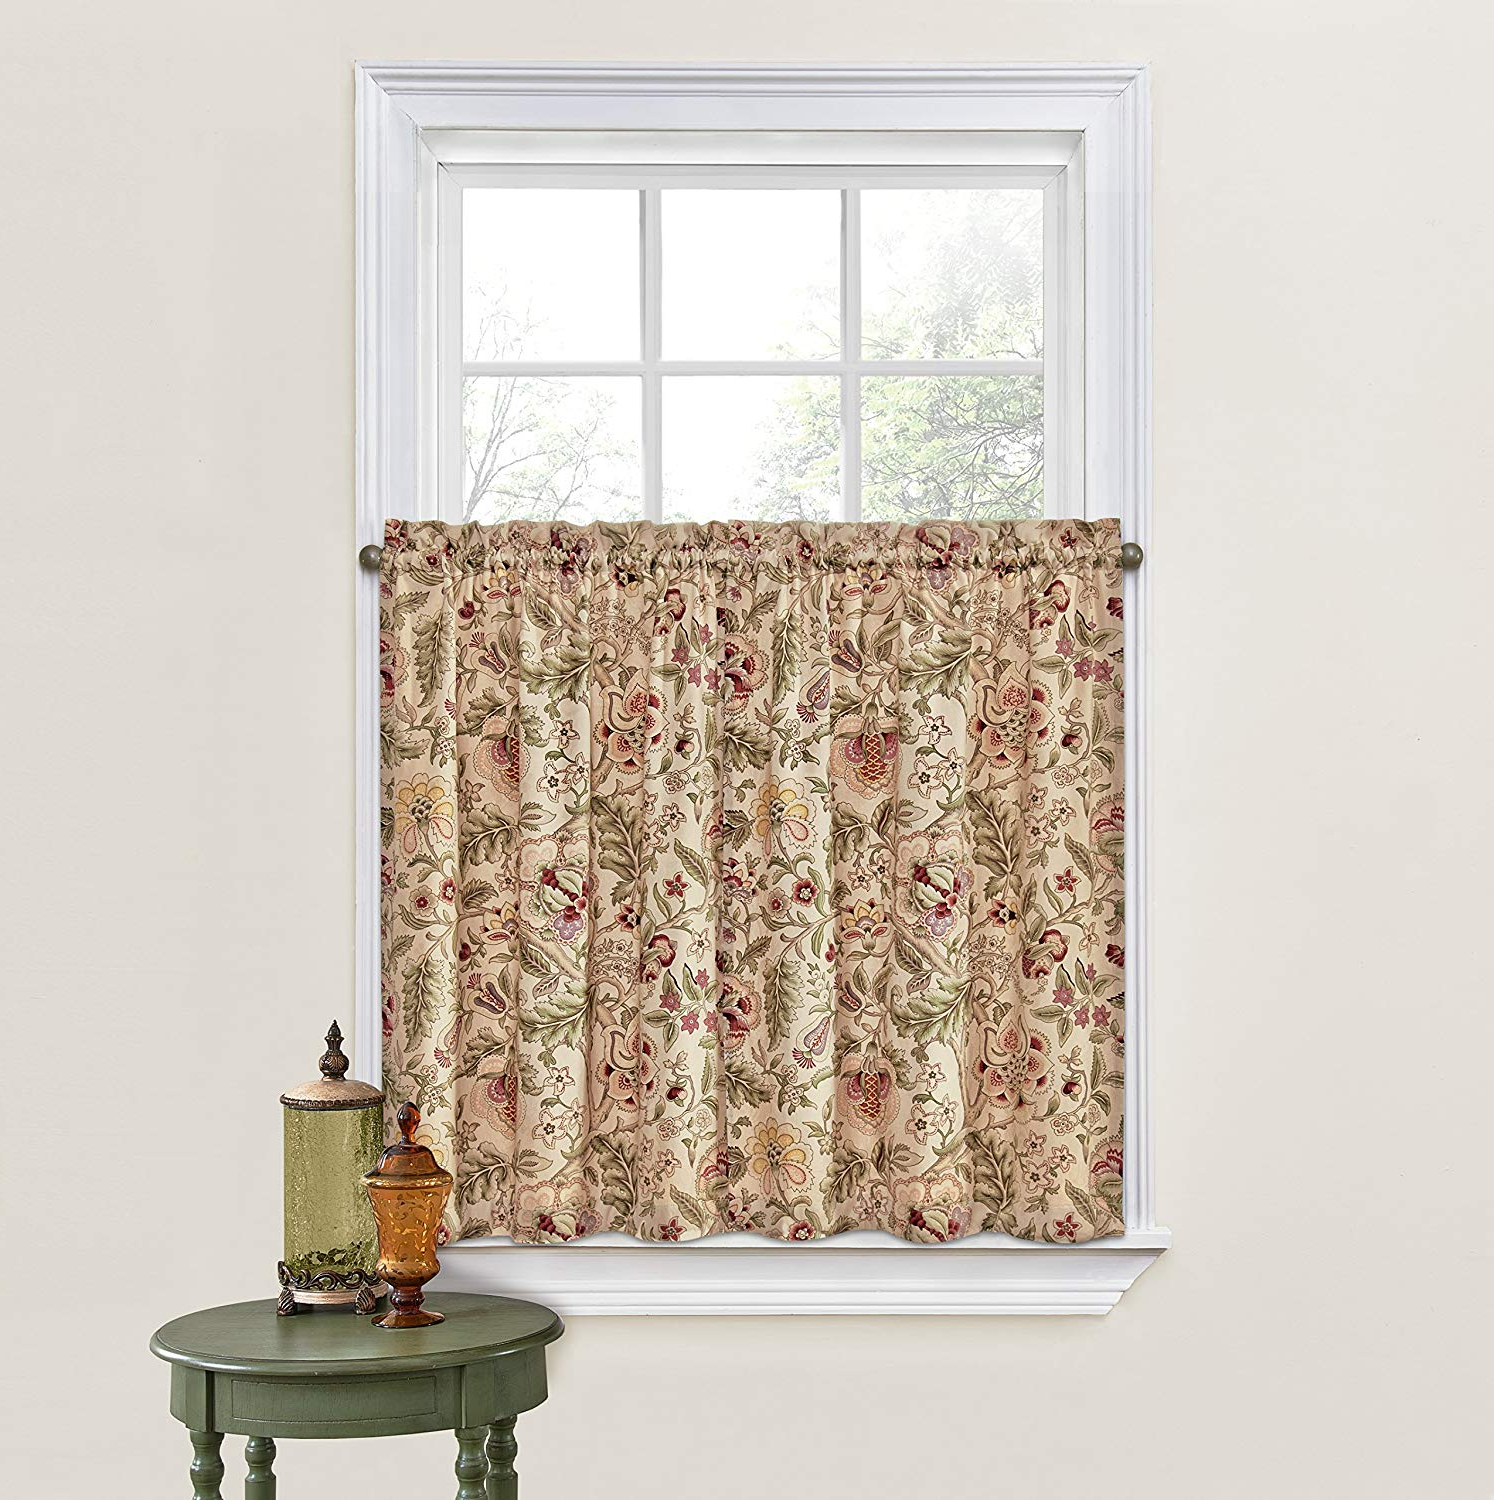 """Waverly Kitchen Curtains For Windows – Imperial Dress 52"""" X 36"""" Small Window Panel Tiers Privacy Window Treatment Pair Bathroom, Living Room, Within Preferred Imperial Flower Jacquard Tier And Valance Kitchen Curtain Sets (View 8 of 20)"""